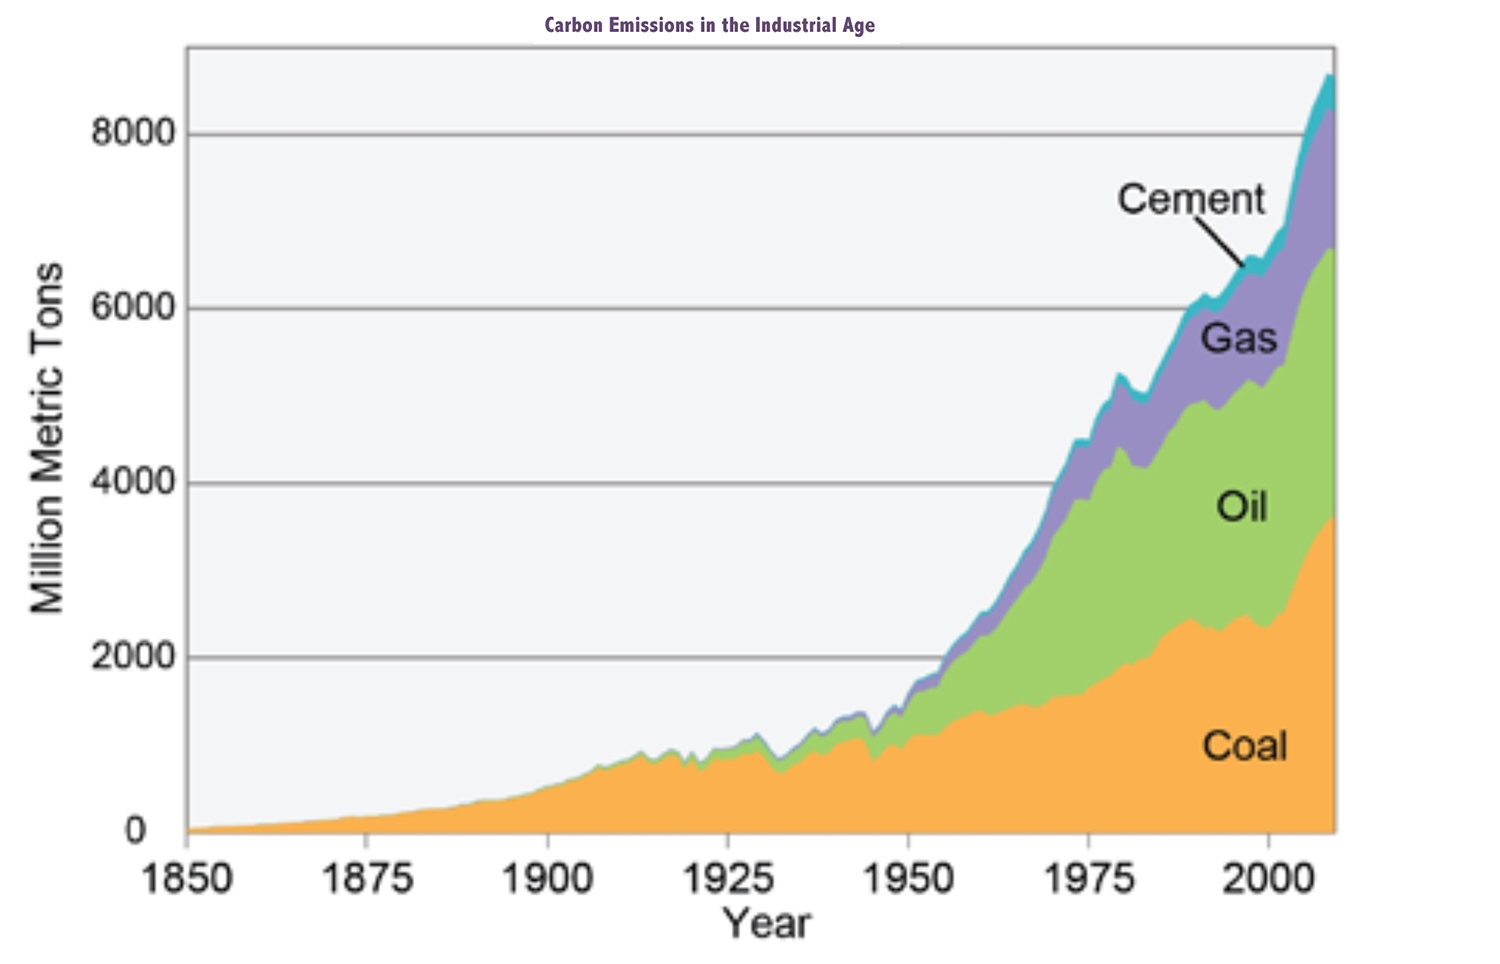 carbon-emissions-in-the-industrial-age-graph.jpeg